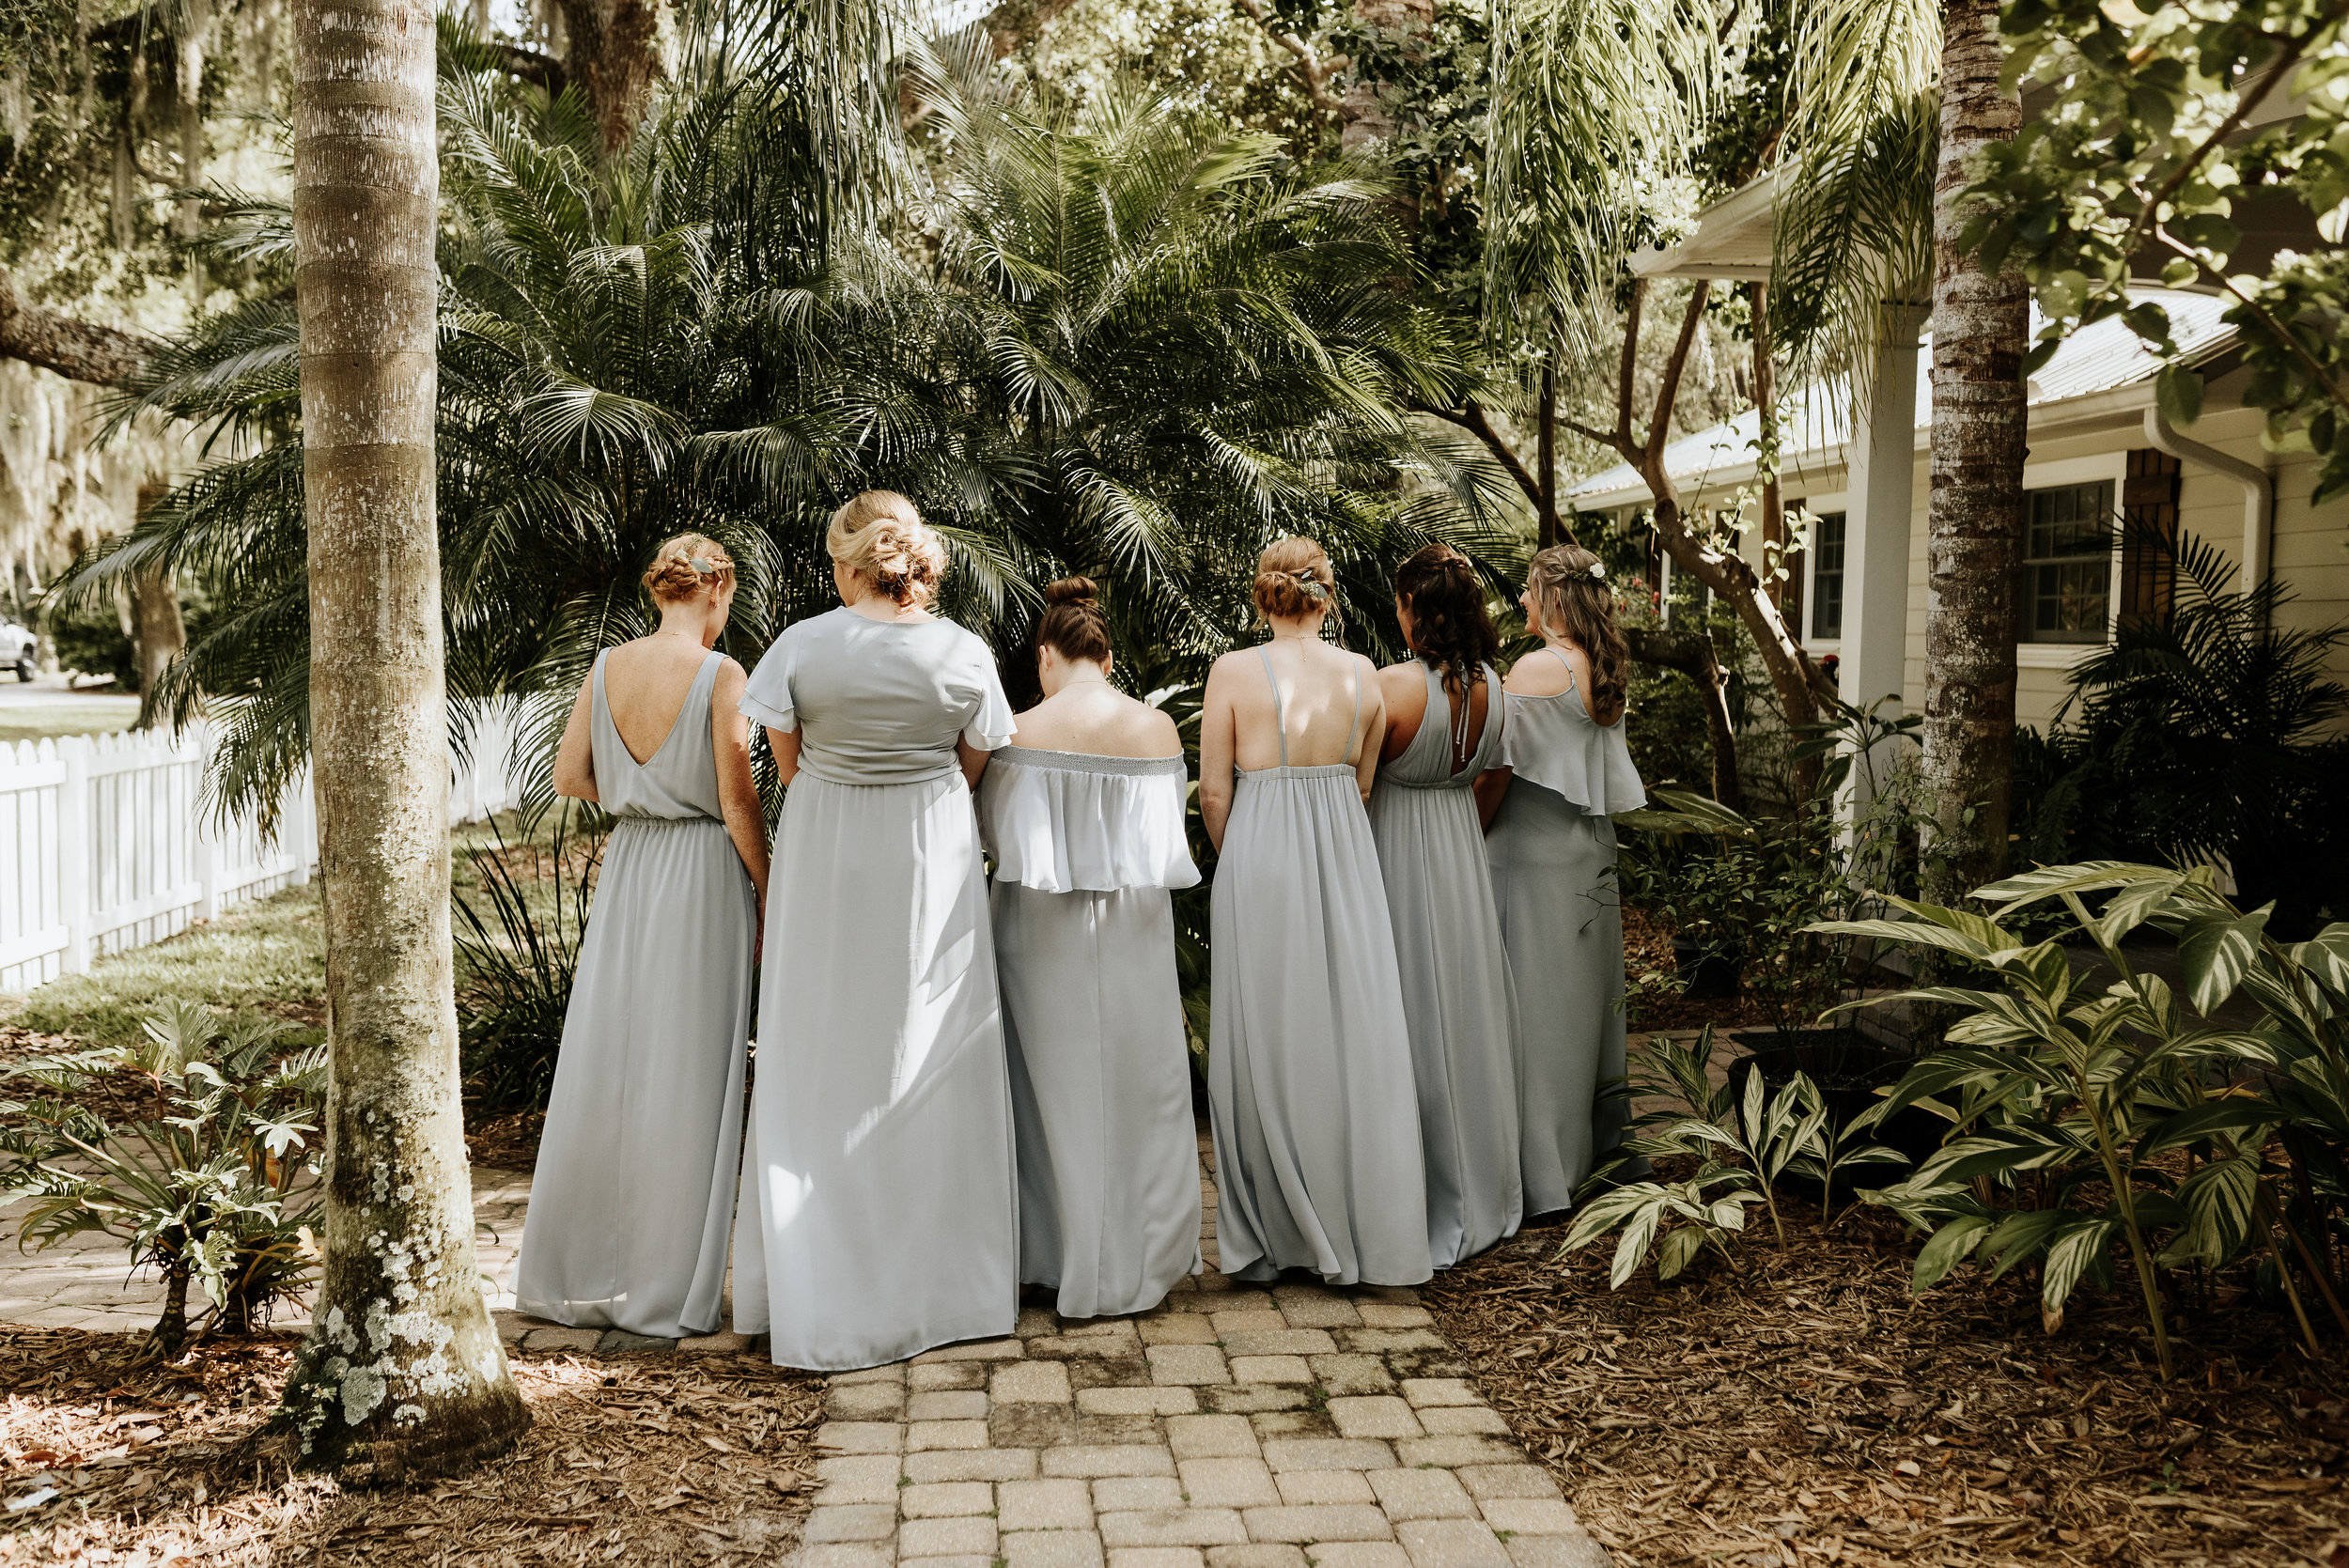 Mikenzi_Brad_Wedding_The_Delamater_House_New_Smyrna_Beach_Florida_Photography_by_V_9913.jpg